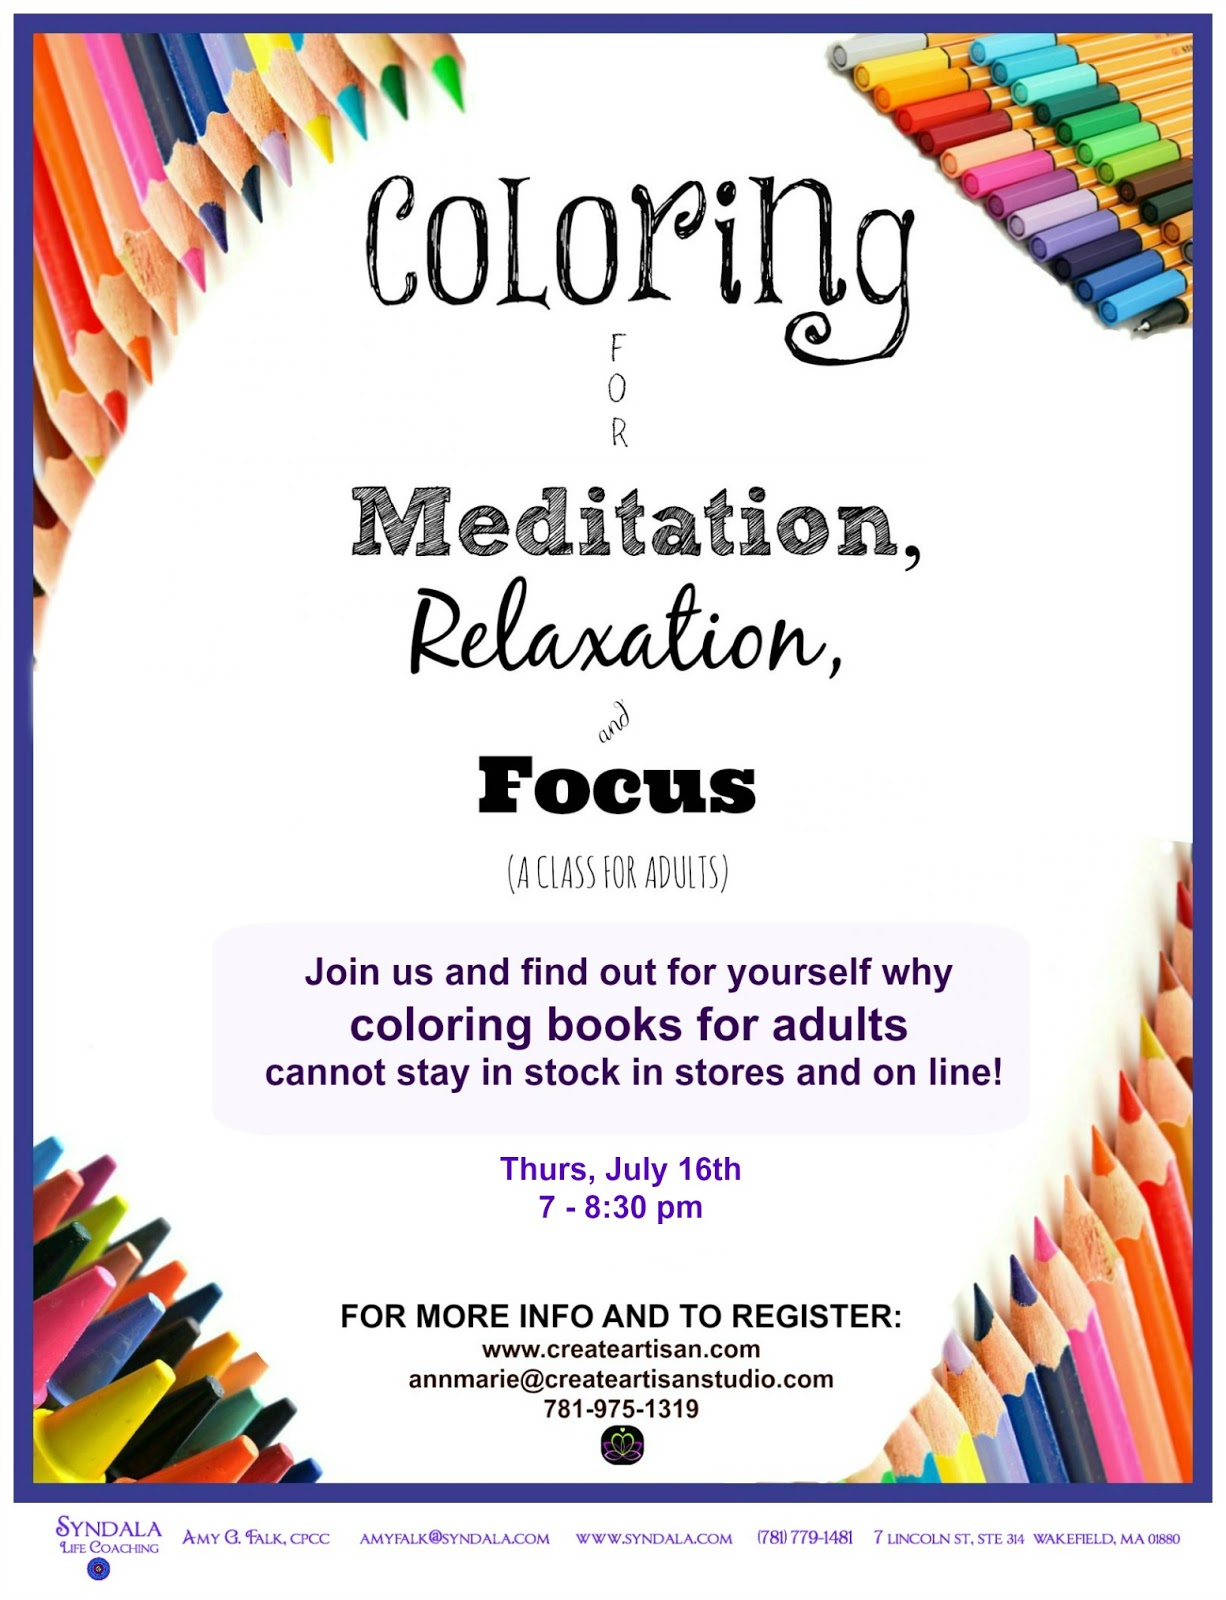 Syndala Life Coaching: COLORING AS MEDITATION?